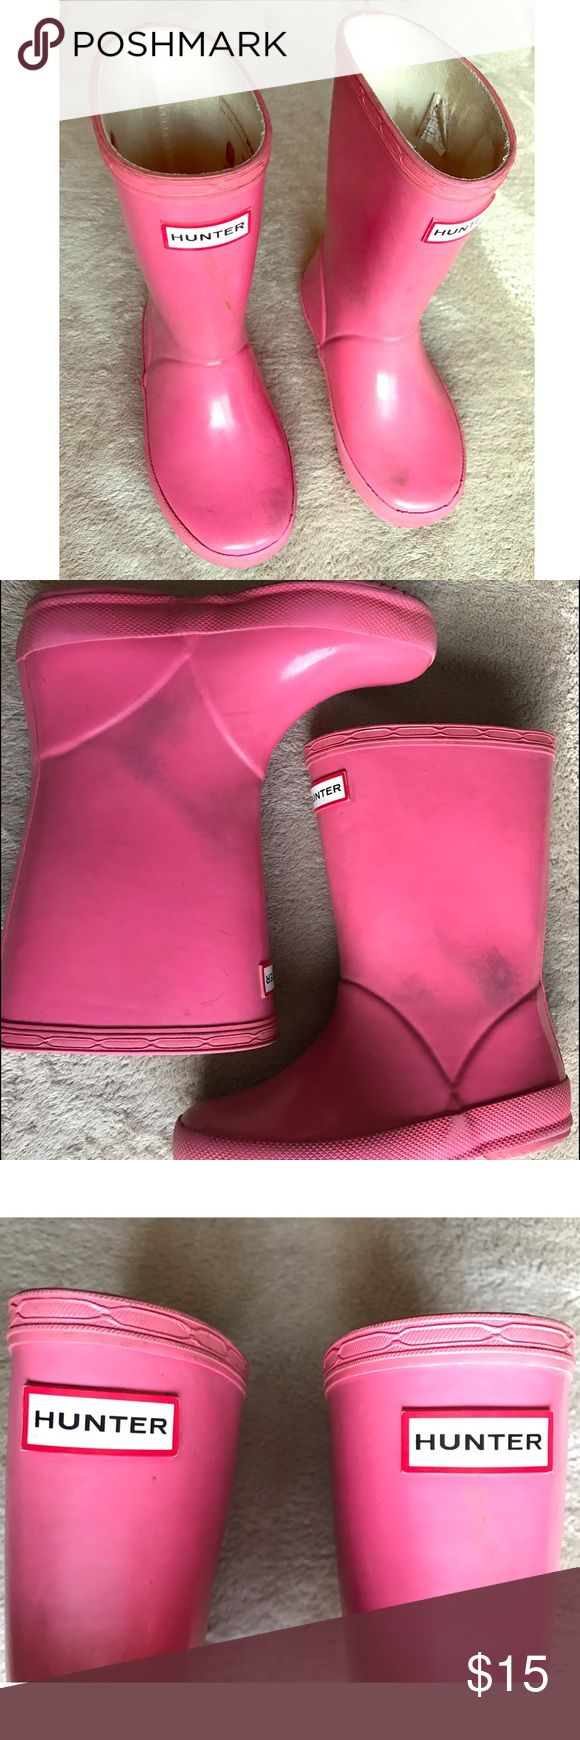 Hot Pink Hunter Rain Boots These Hot Pink Hunter rain boots are the perfect shoe for the rain or running around in the mud. There is stains that I couldn't remove but there is not ripping or scratches. They can still be perfect for the outdoors. Hunter Boots Shoes Rain & Snow Boots